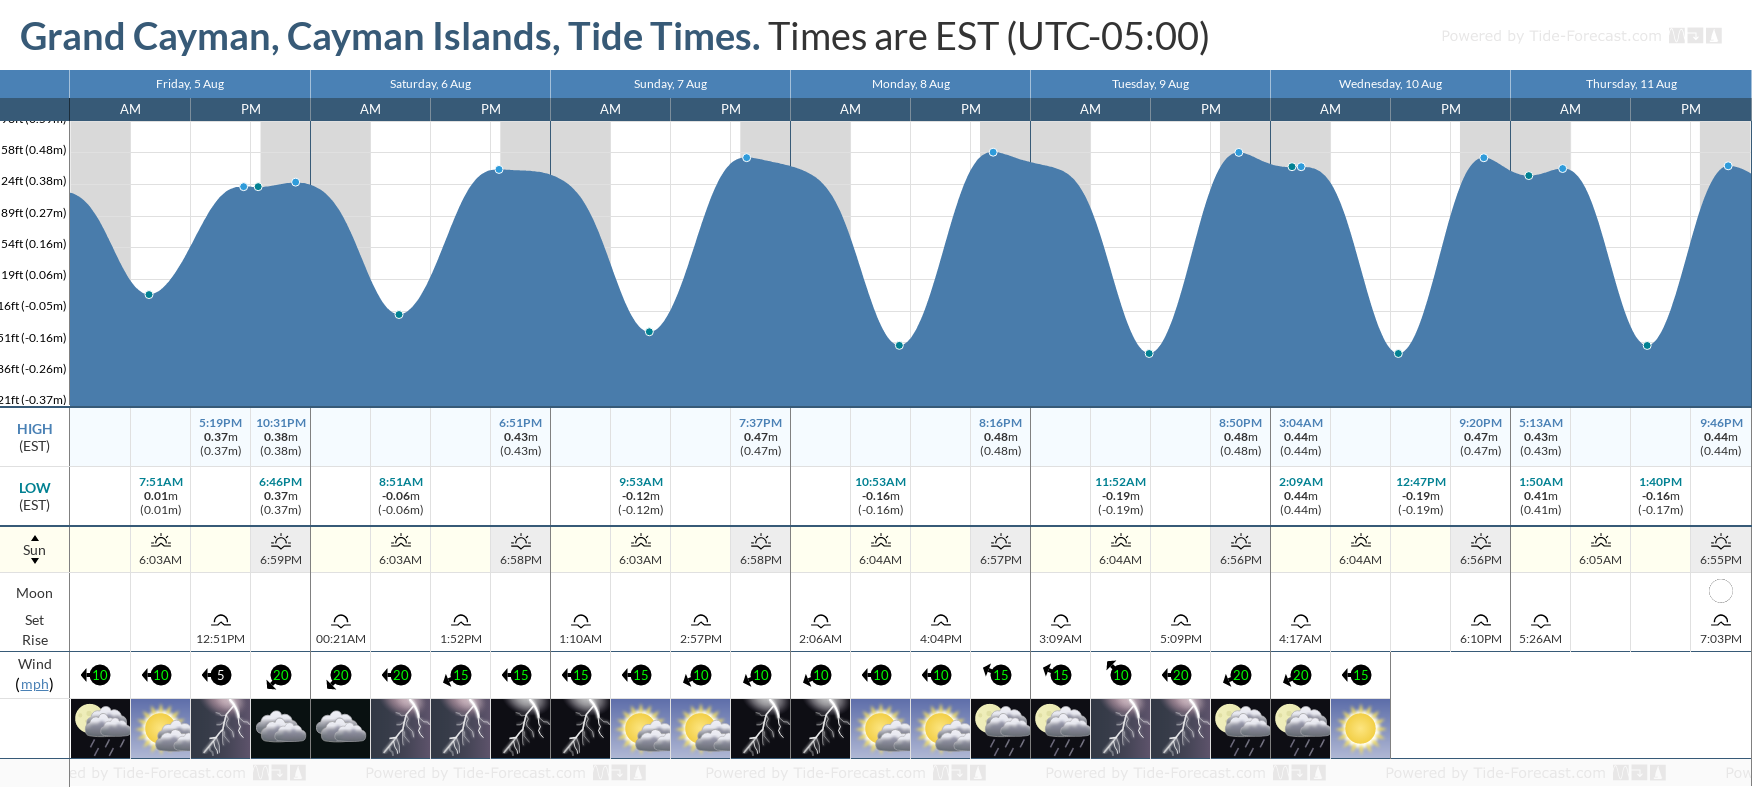 Grand Cayman, Cayman Islands Tide Chart including high and low tide tide times for the next 7 days